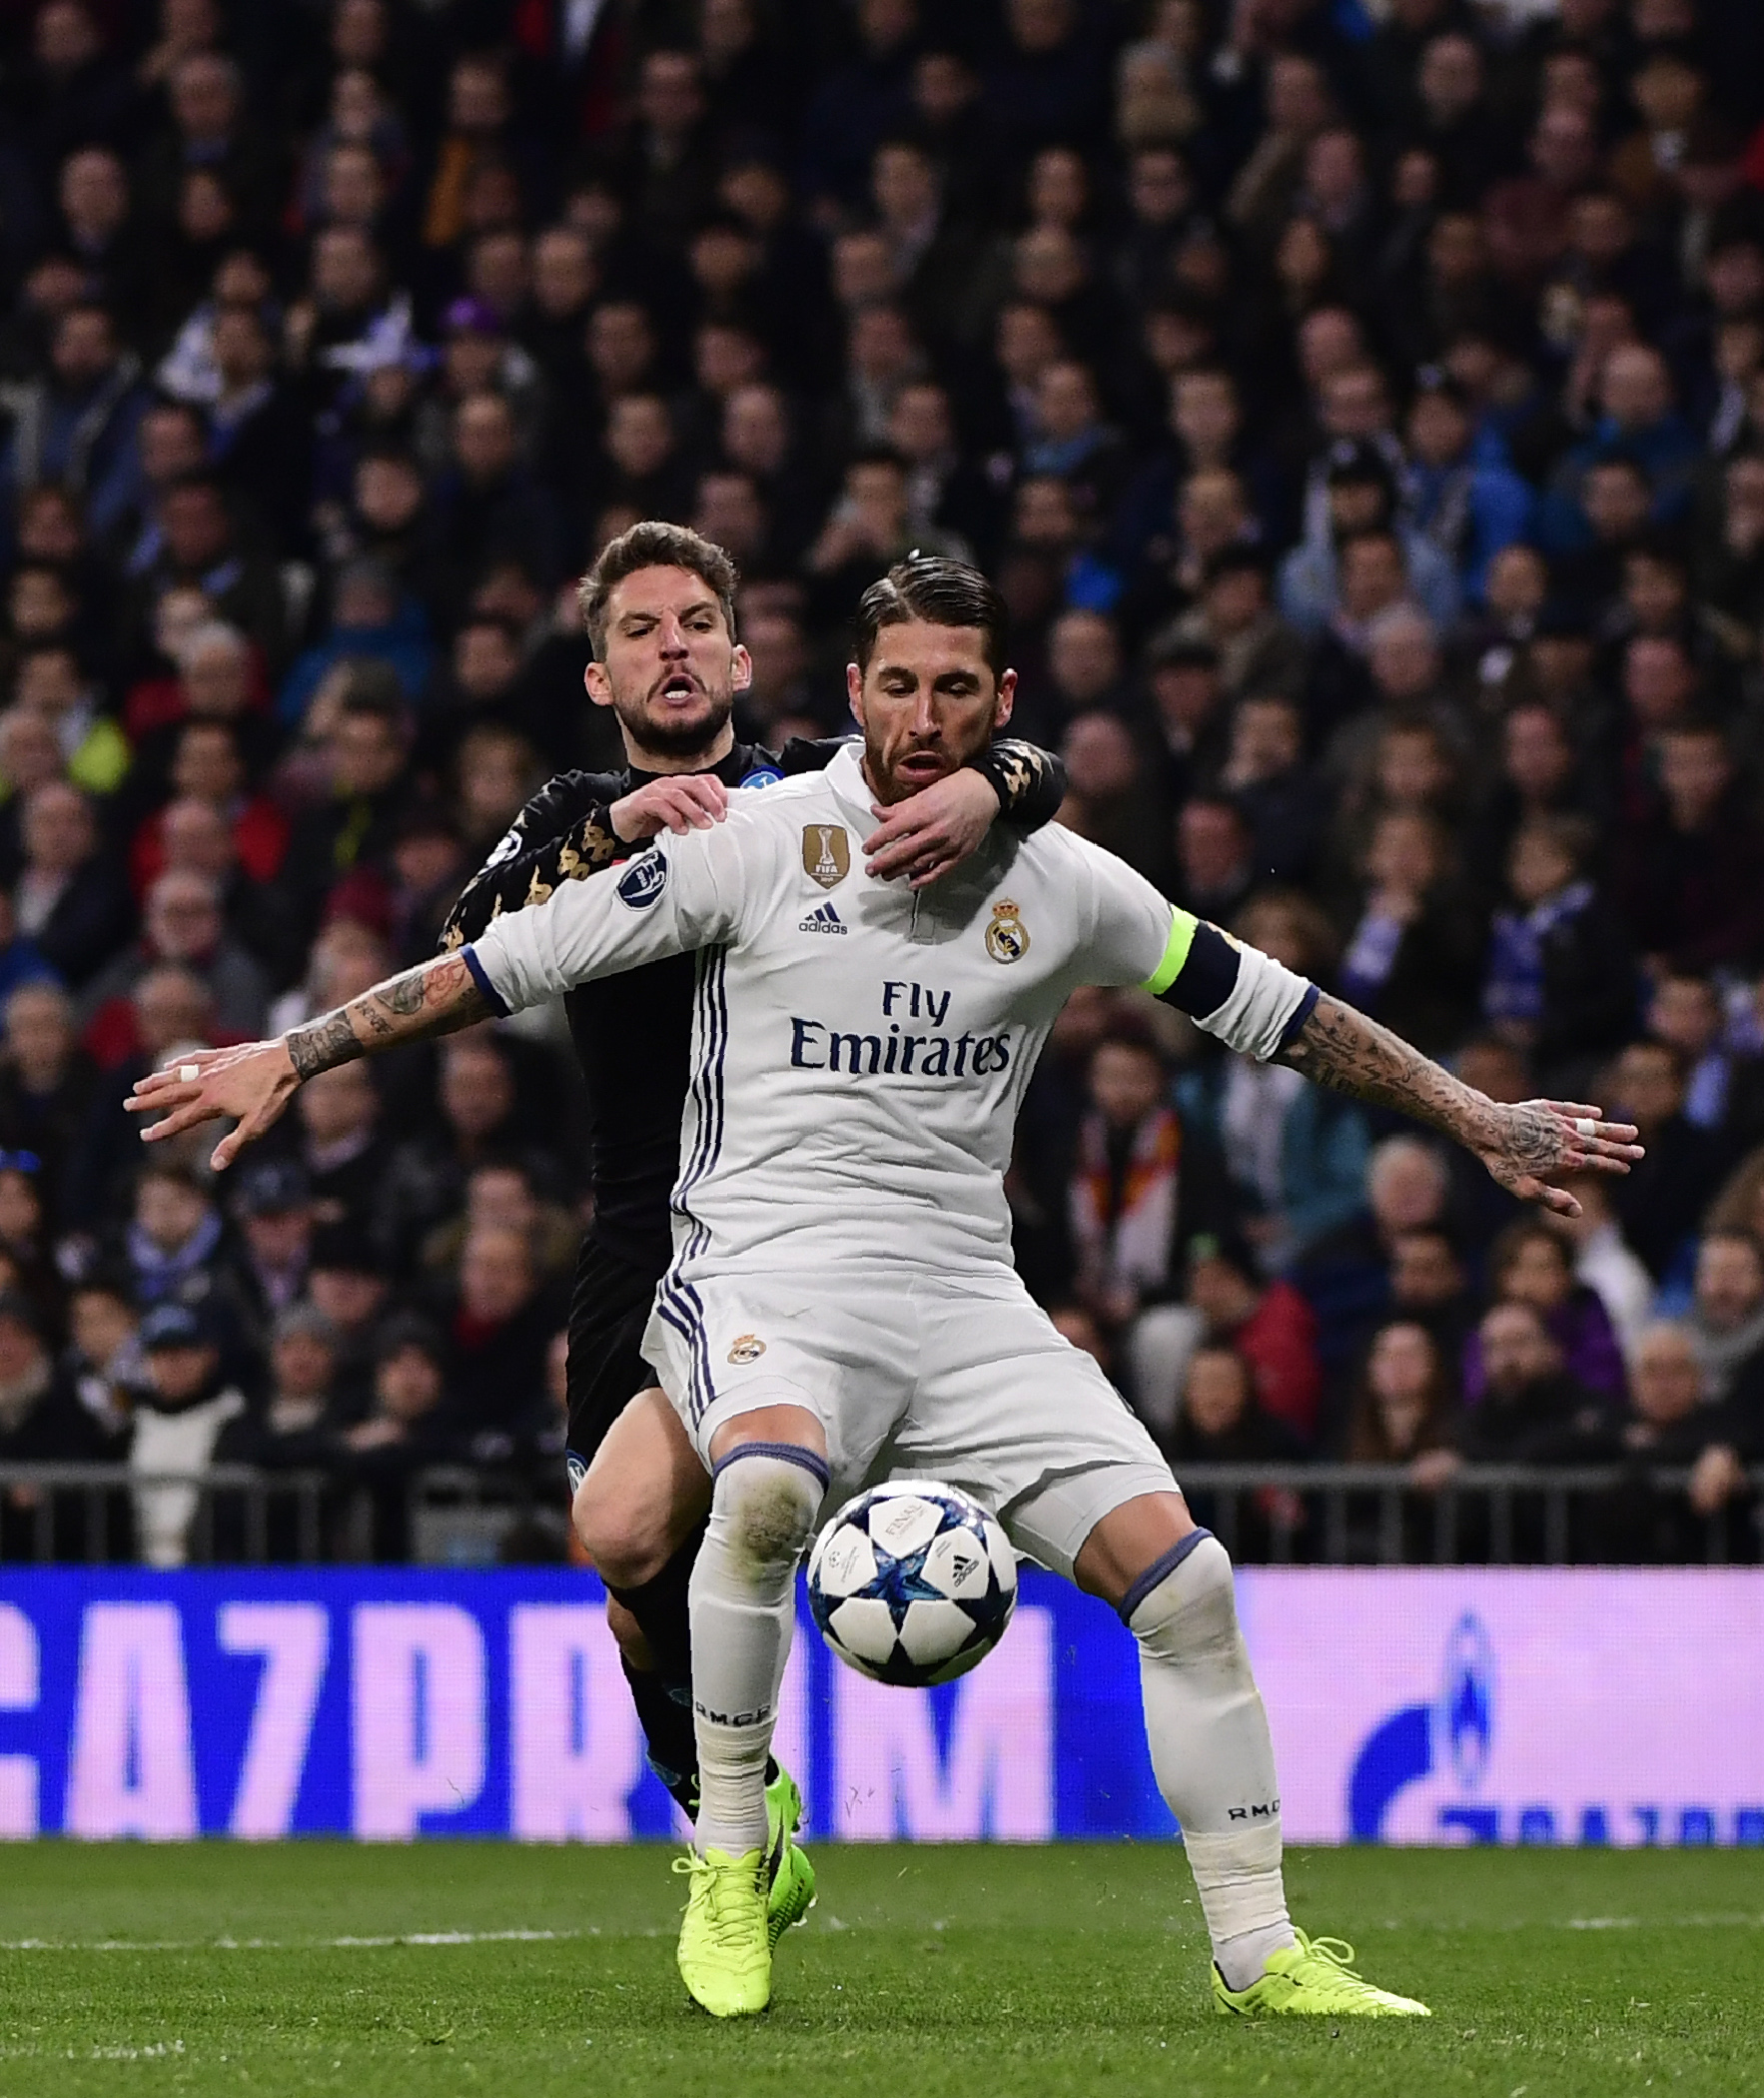 Napoli's forward from Belgium Dries Mertens (L) vies wth Real Madrid's defender Sergio Ramos during the UEFA Champions League round of 16 first leg football match Real Madrid CF vs SSC Napoli at the Santiago Bernabeu stadium in Madrid on February 15, 2017. / AFP PHOTO / PIERRE-PHILIPPE MARCOU